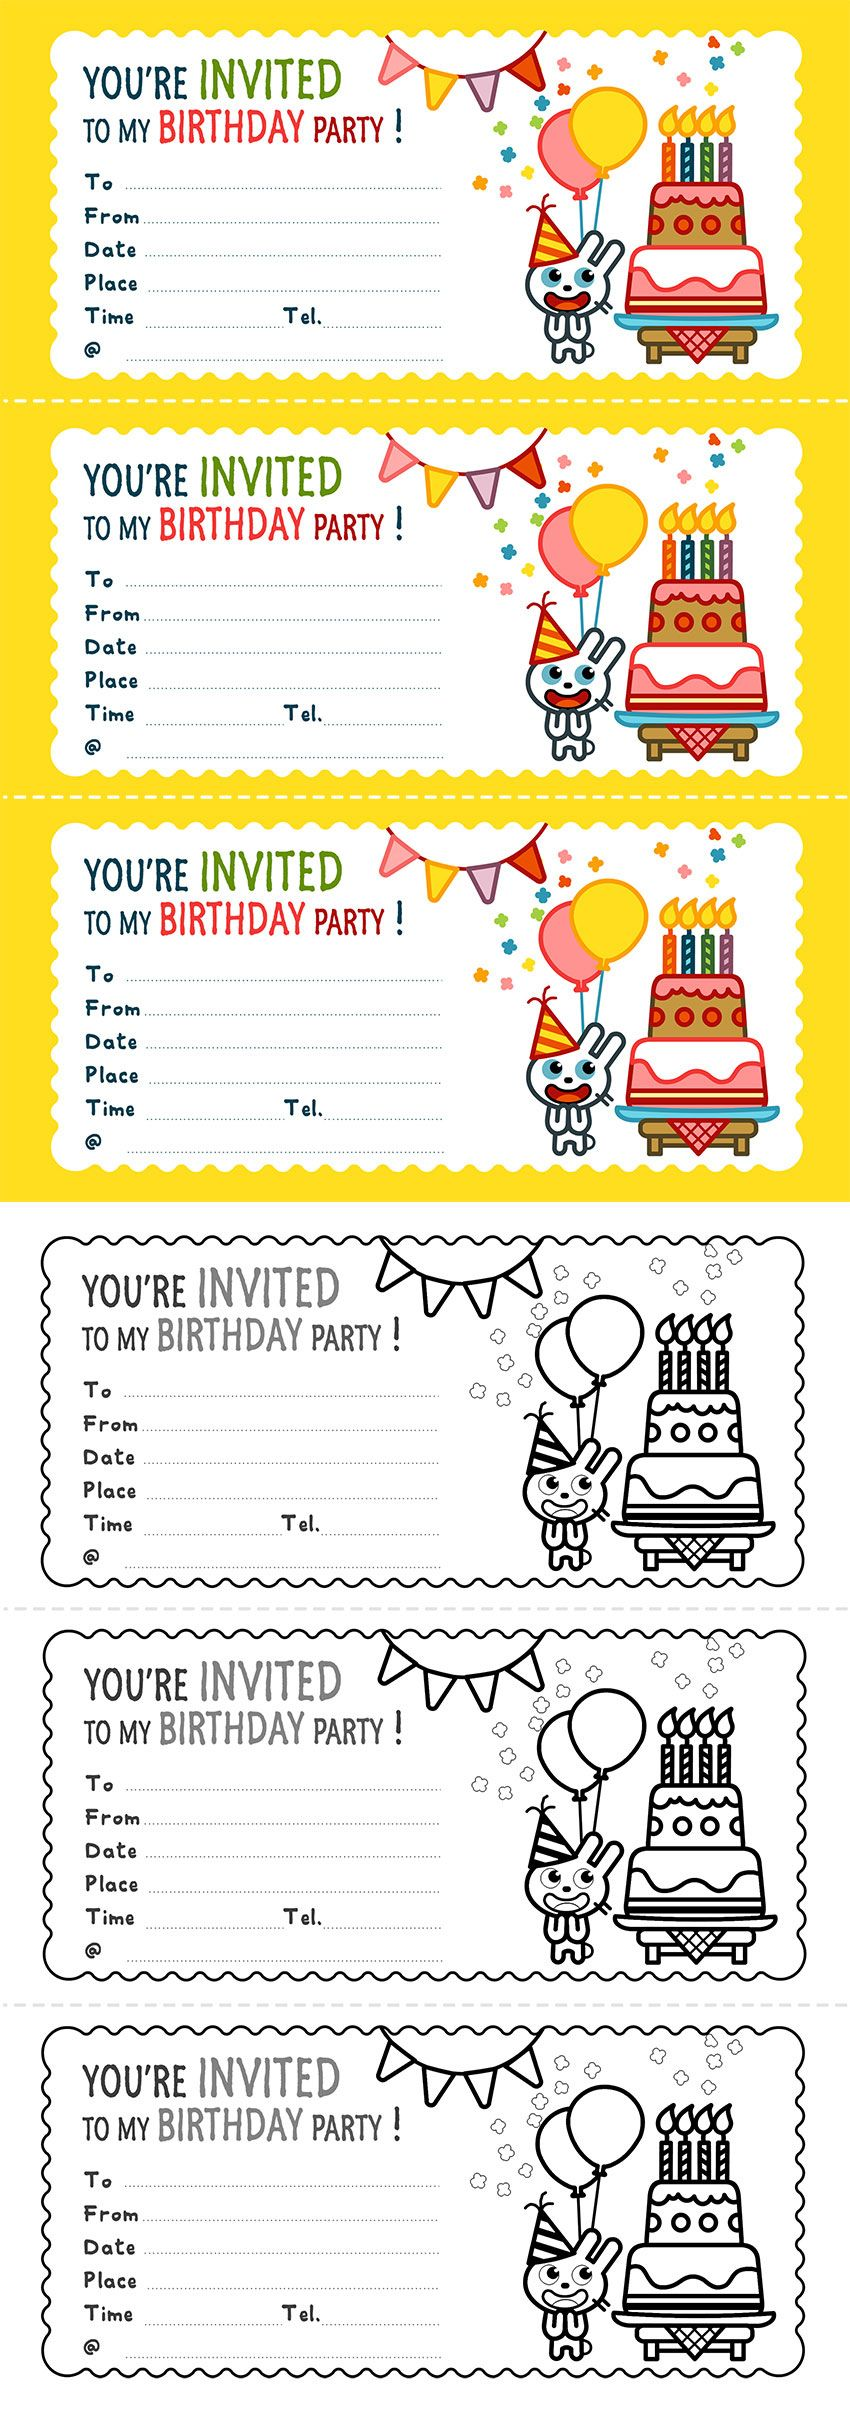 Youre invited to my birthday party Invitation card card